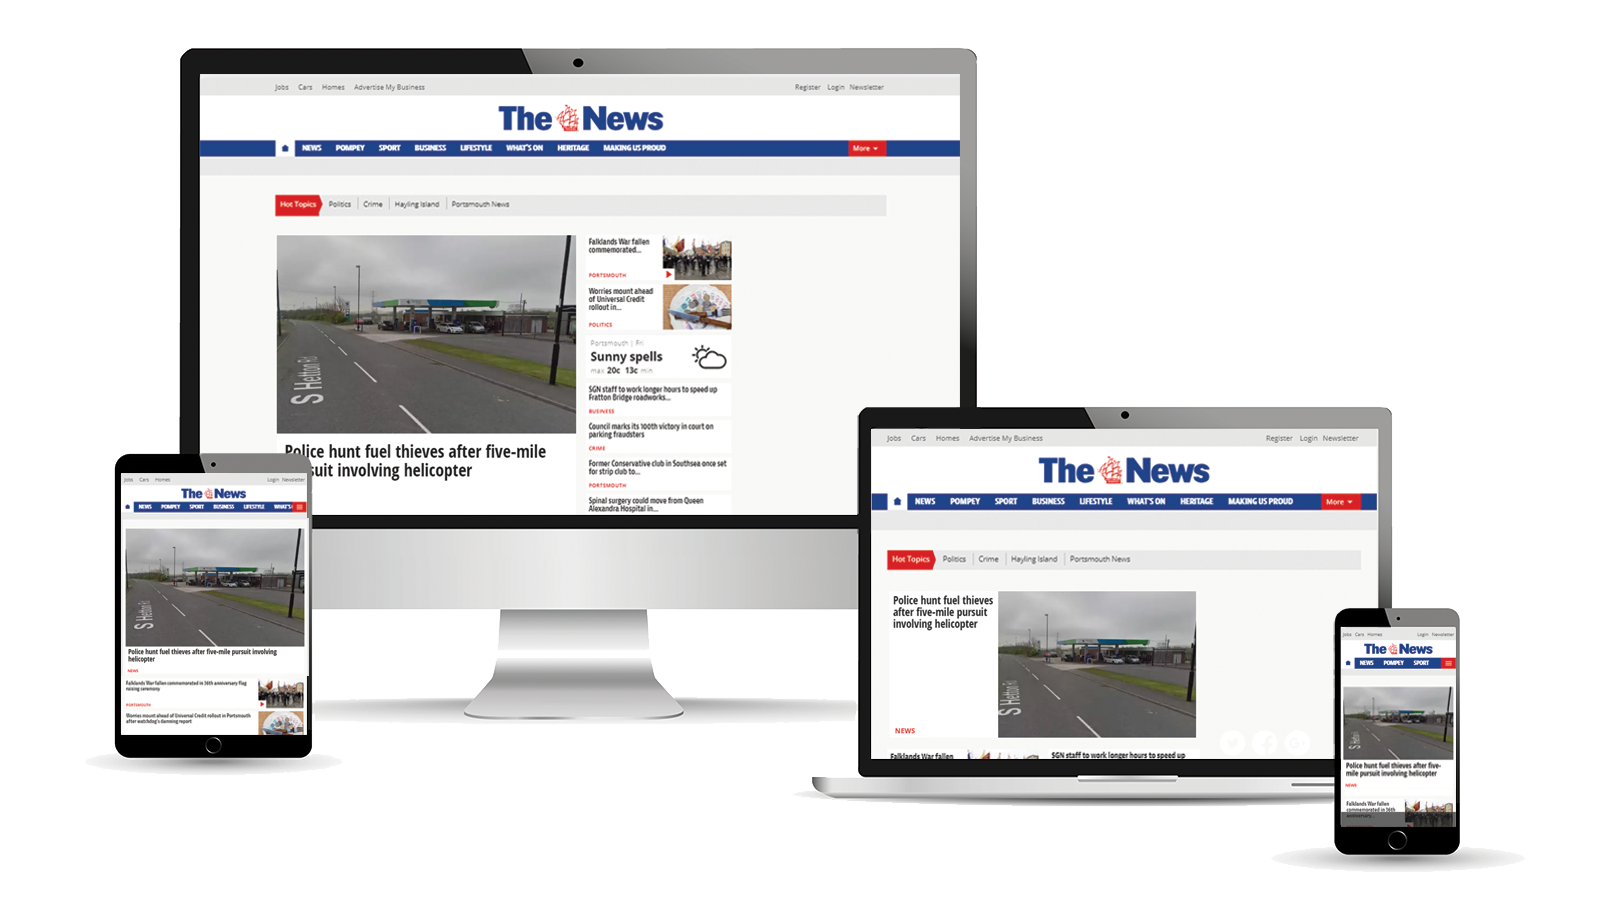 Advertise across desktop, tablet and mobile with The News